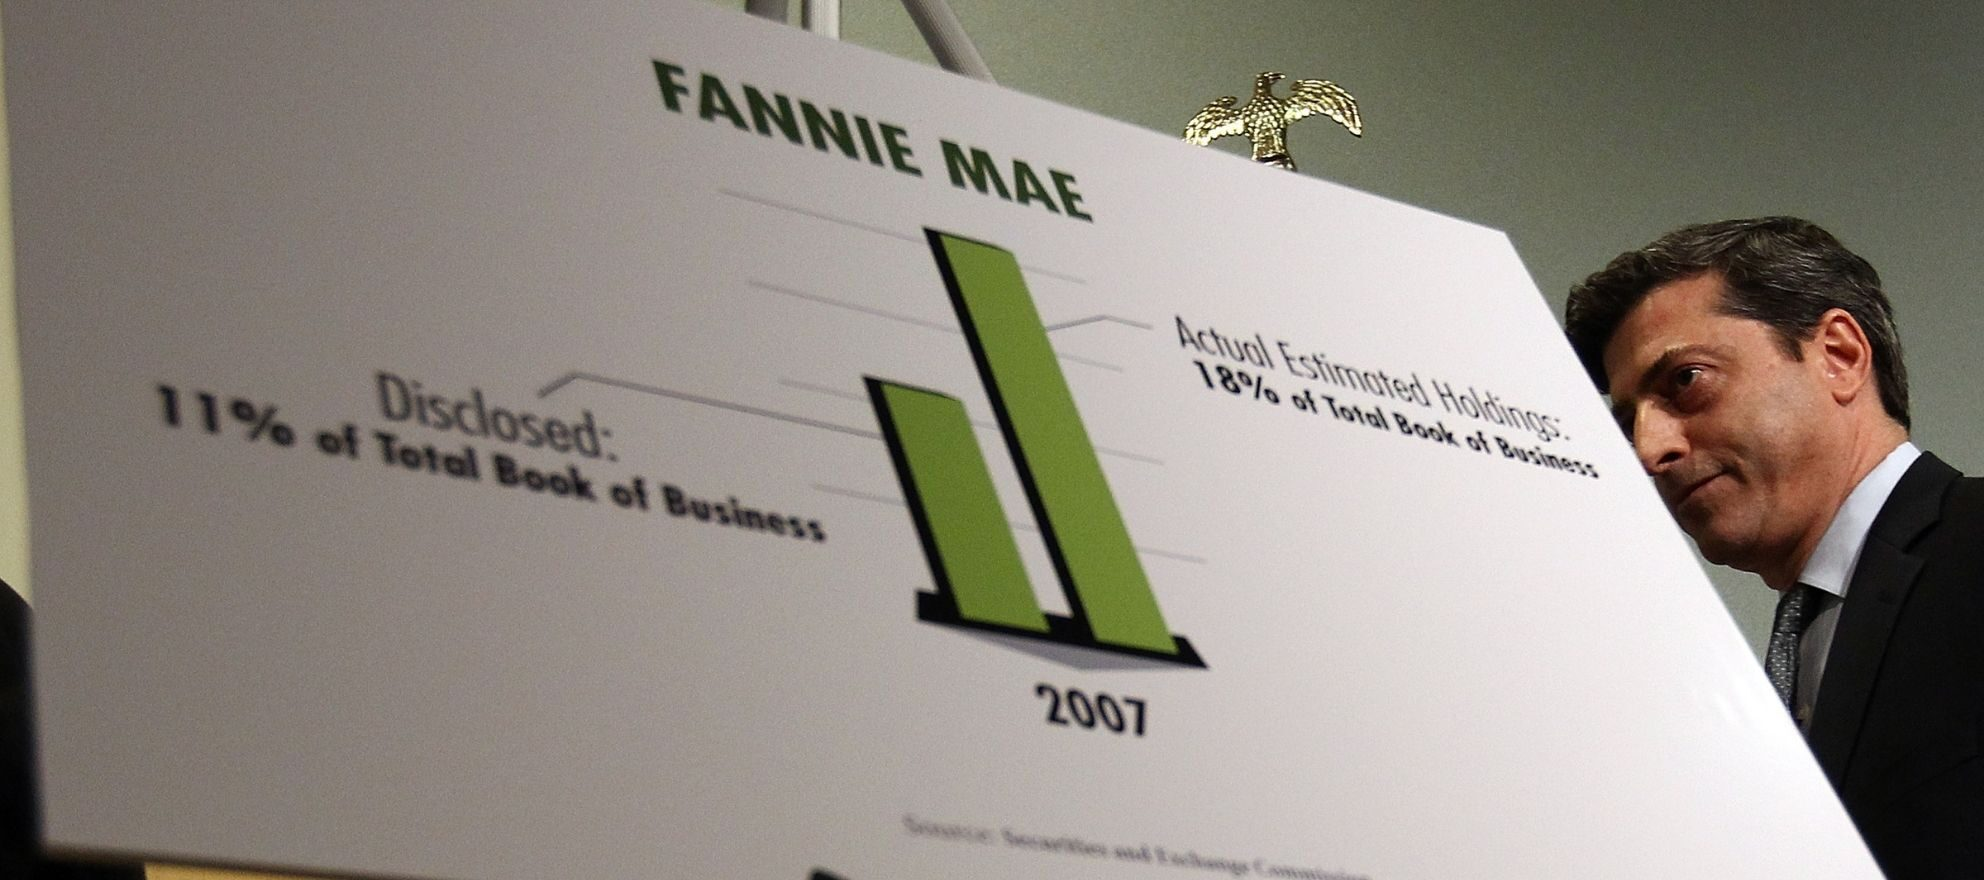 Big changes are coming to Fannie and Freddie ... beware